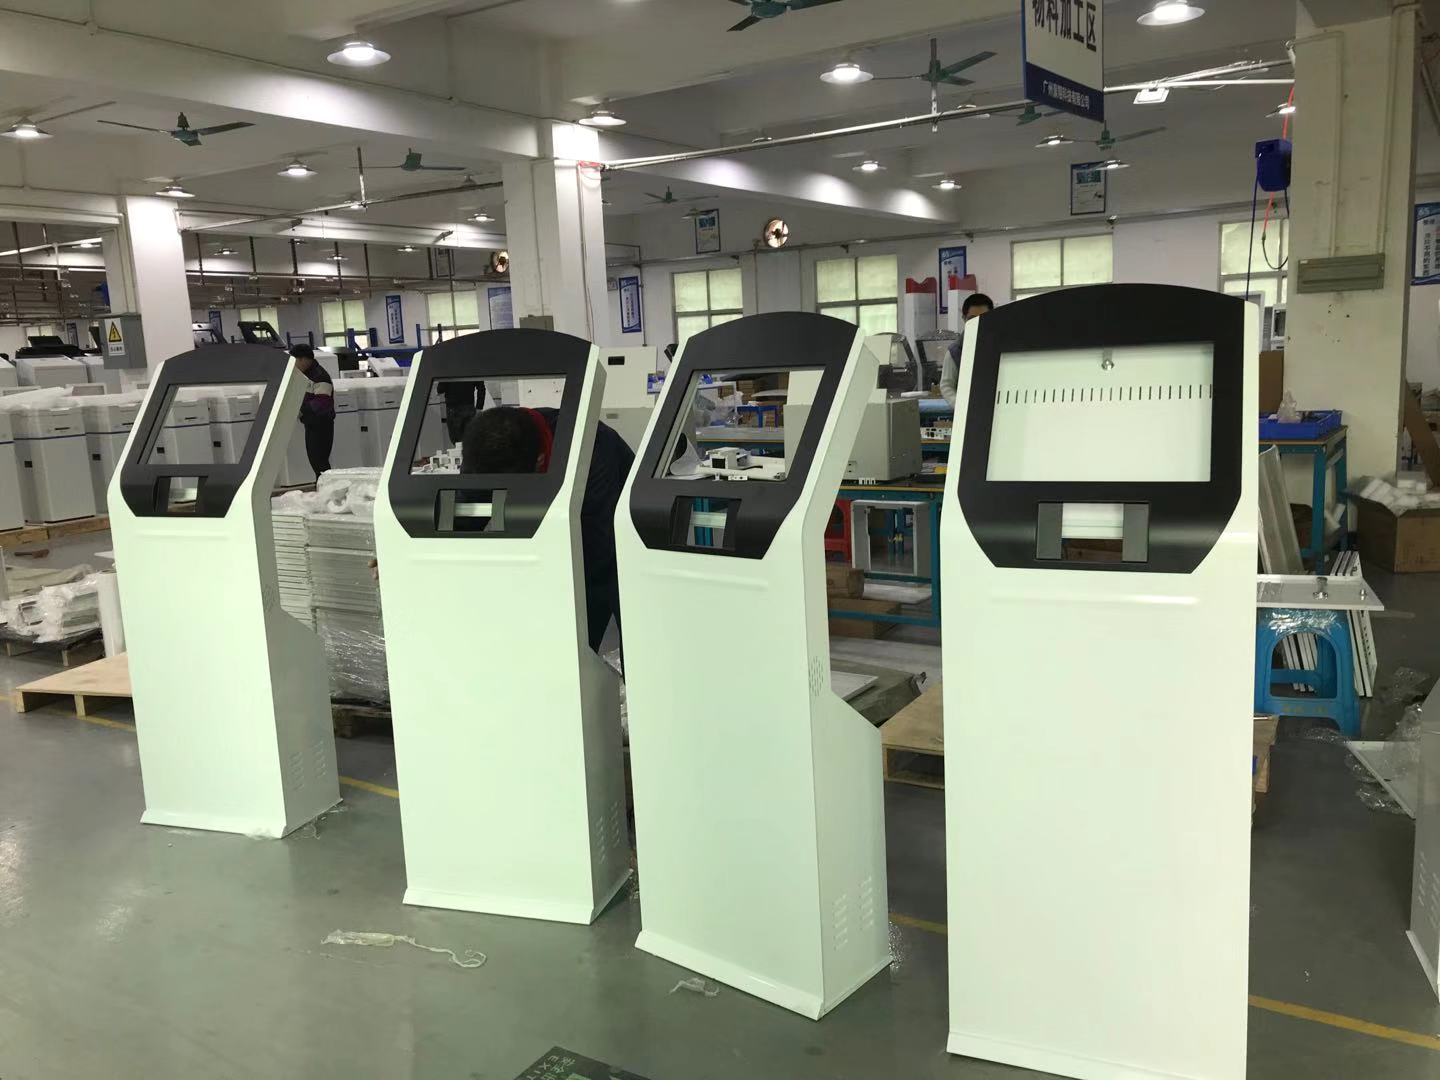 Sample of 4 pcs queuing machines ready to ship